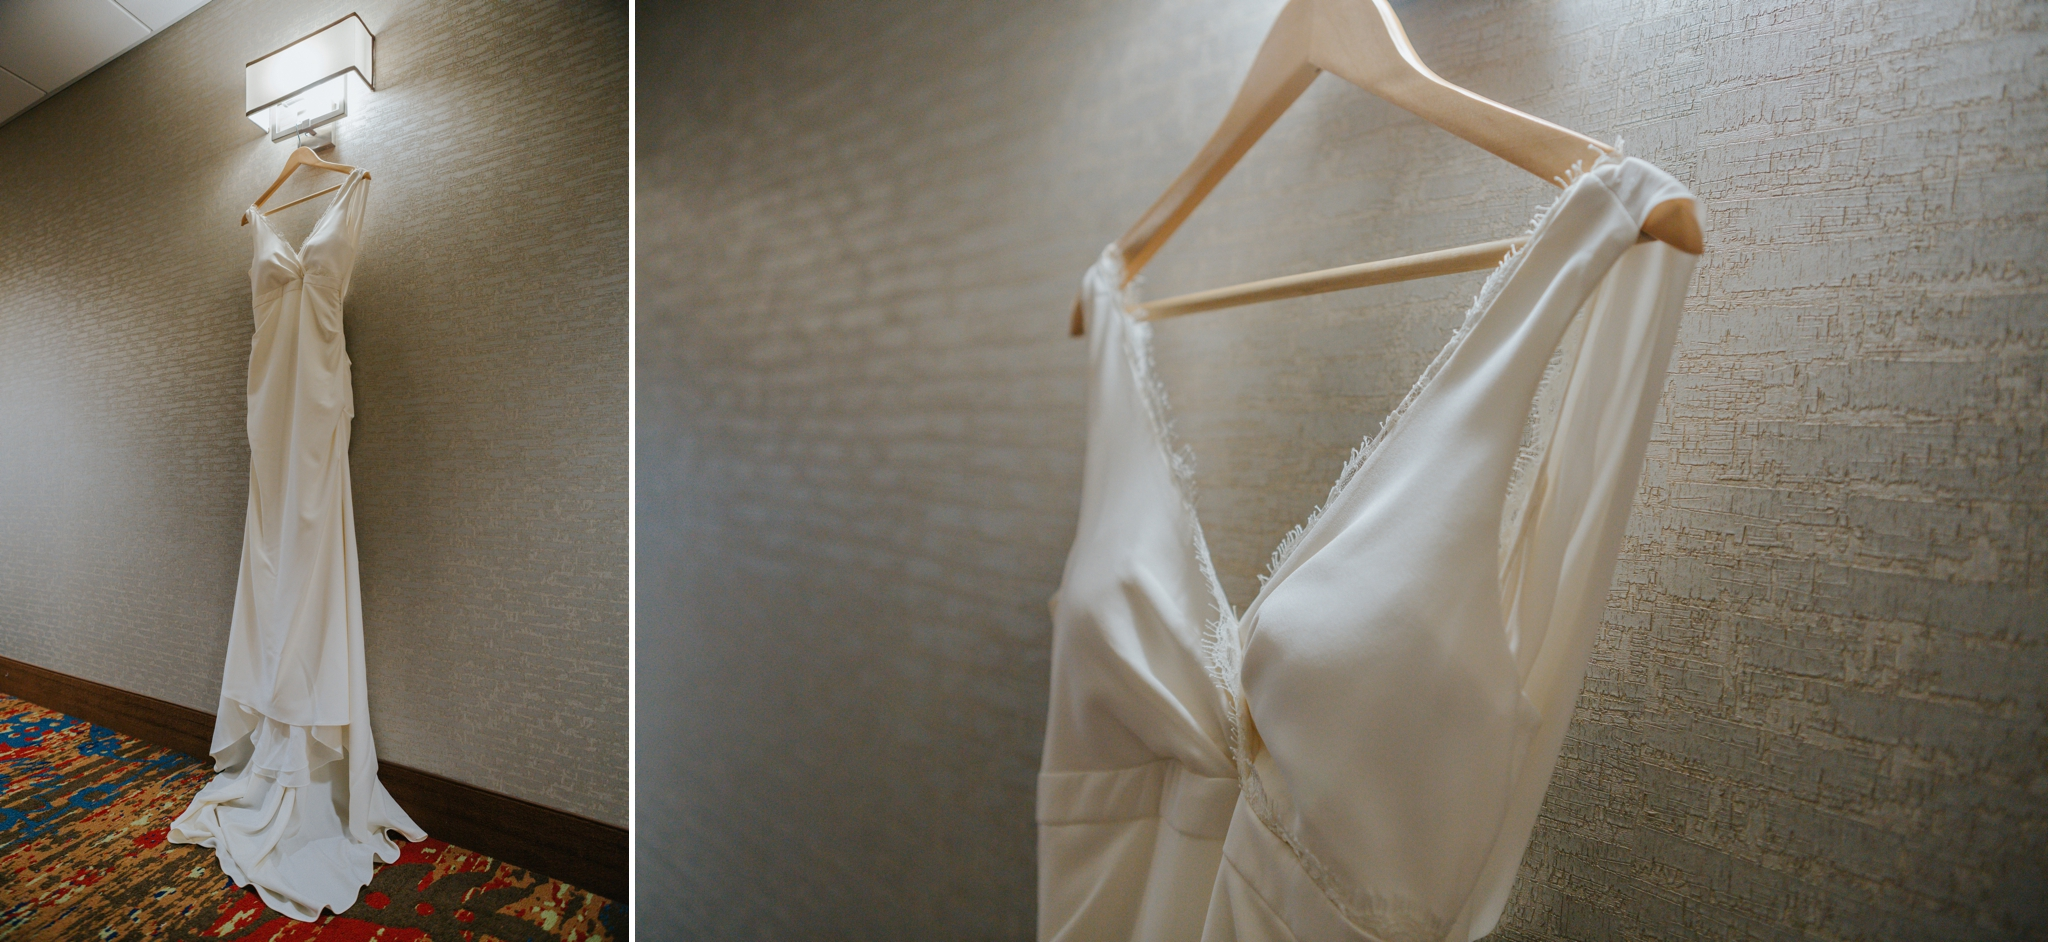 Finding the perfect Wedding Dress for your Socal Wedding